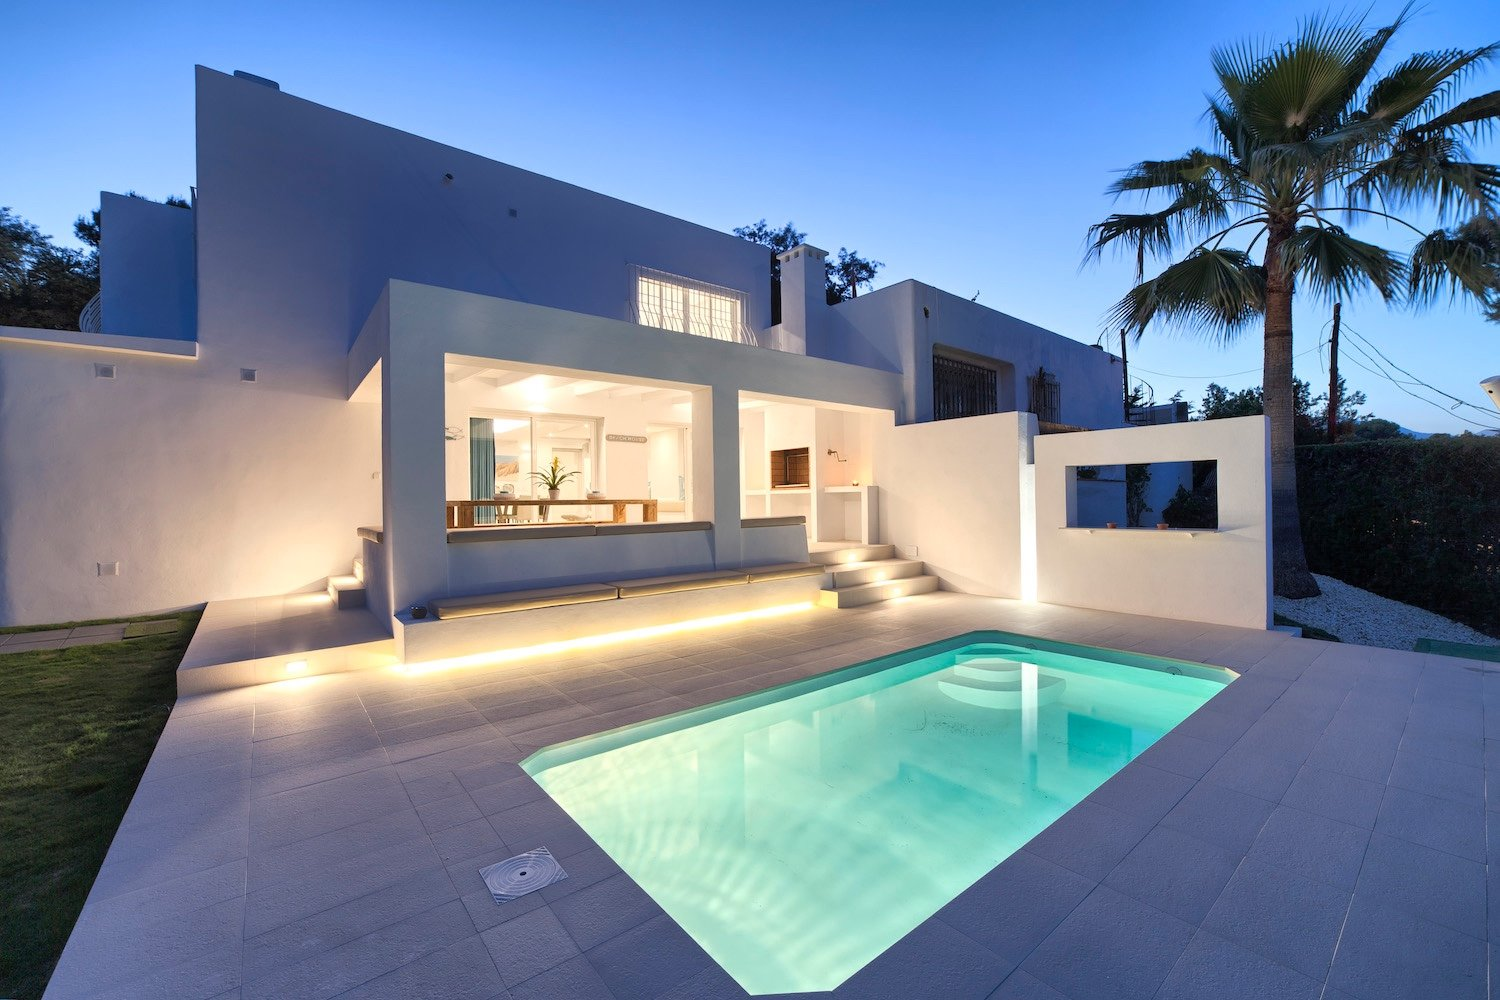 Villa for rent in Marbella, Nueva Andalucia